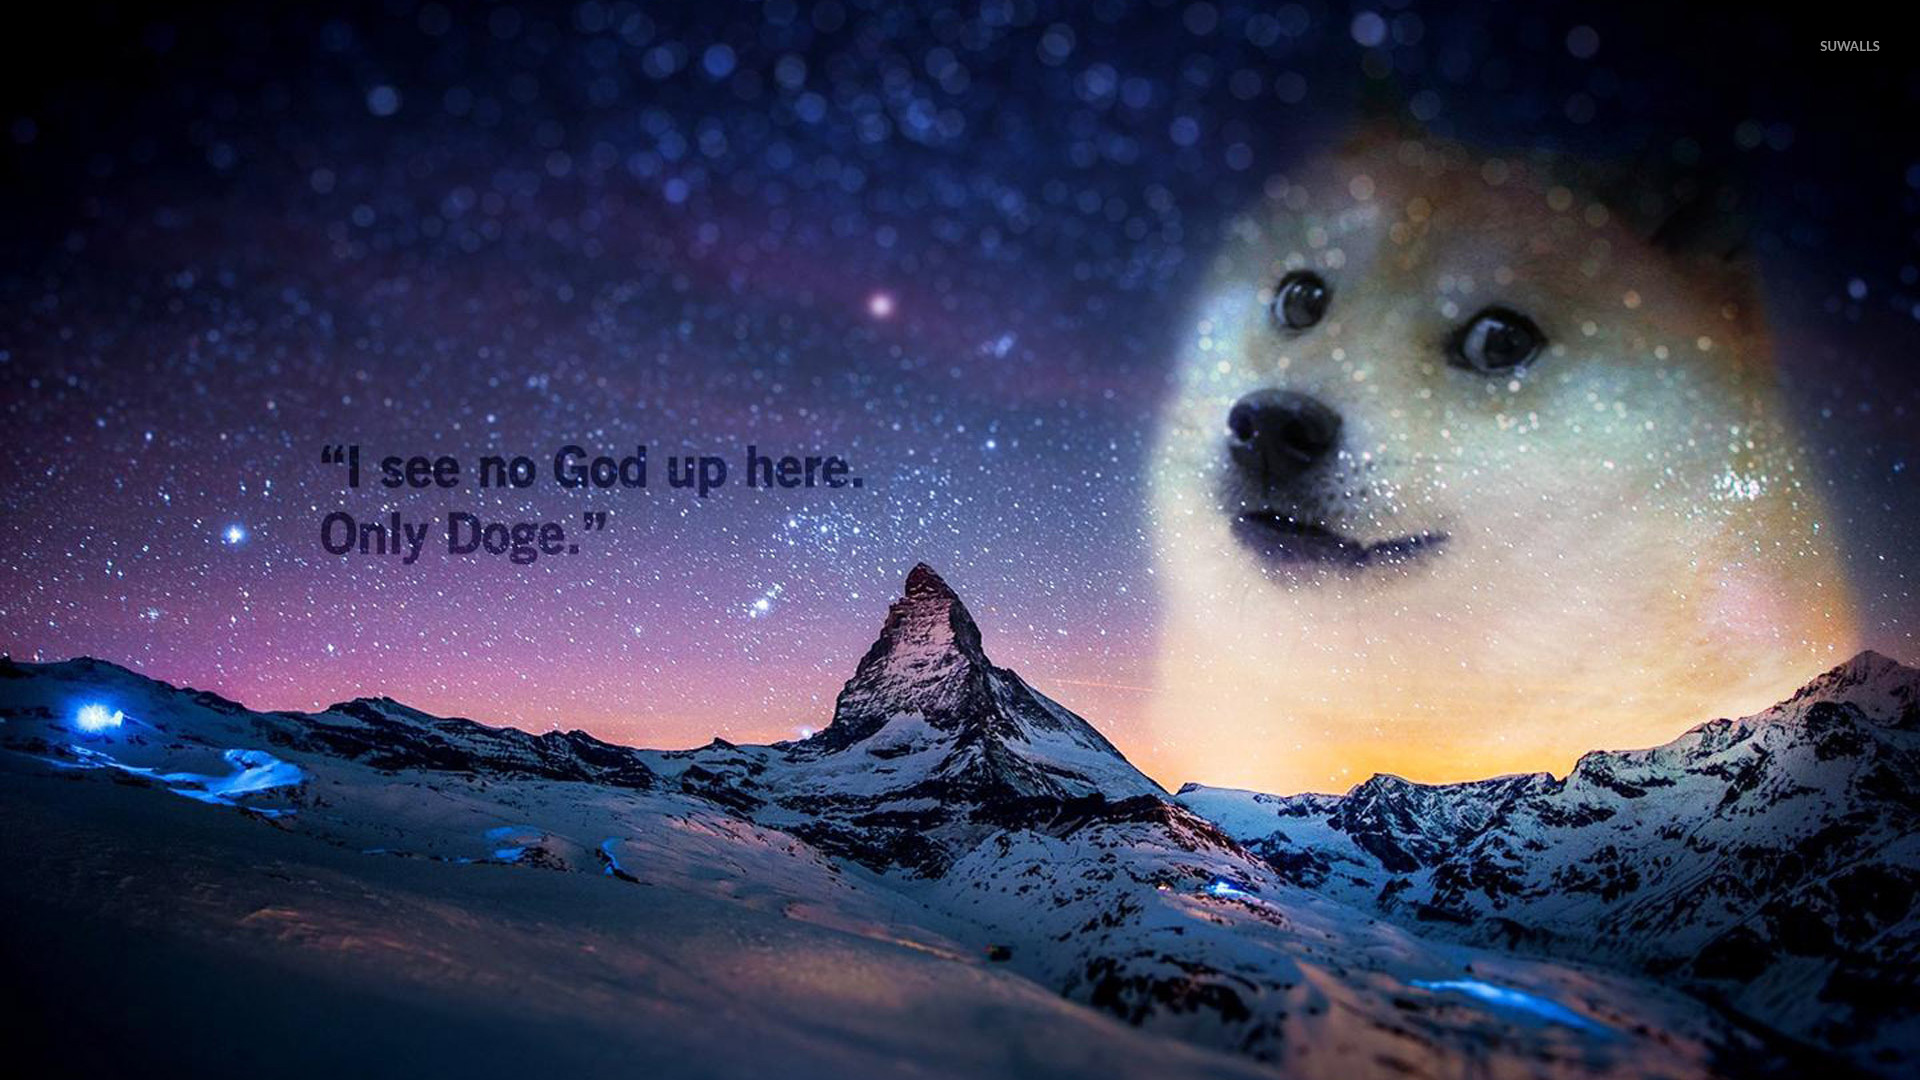 Doge Wallpaper 1920x1080